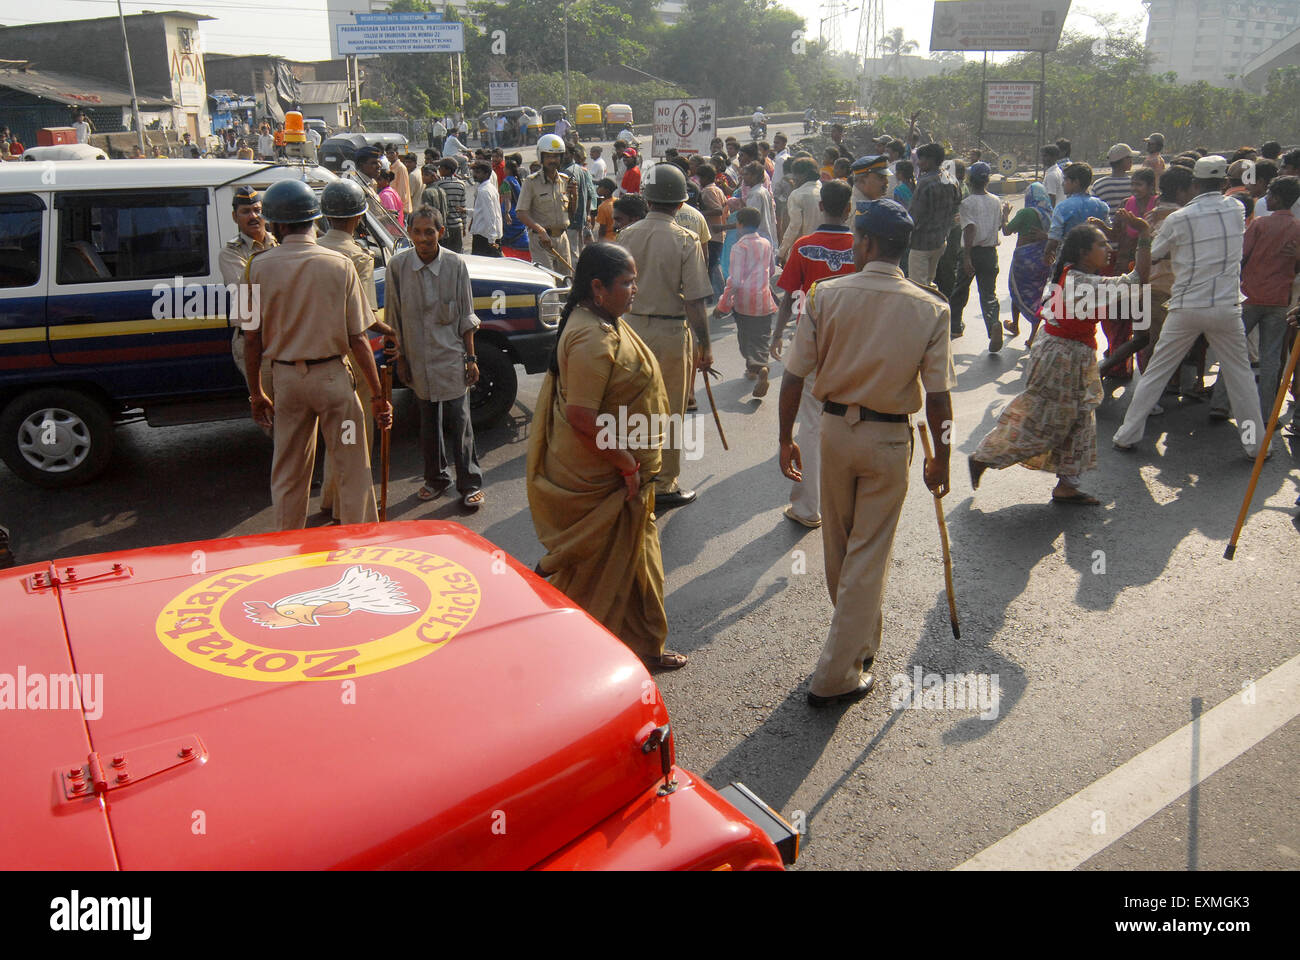 Riot police try to control the situation after the Dalit community resort to violent protests ; Bombay Mumbai - Stock Image